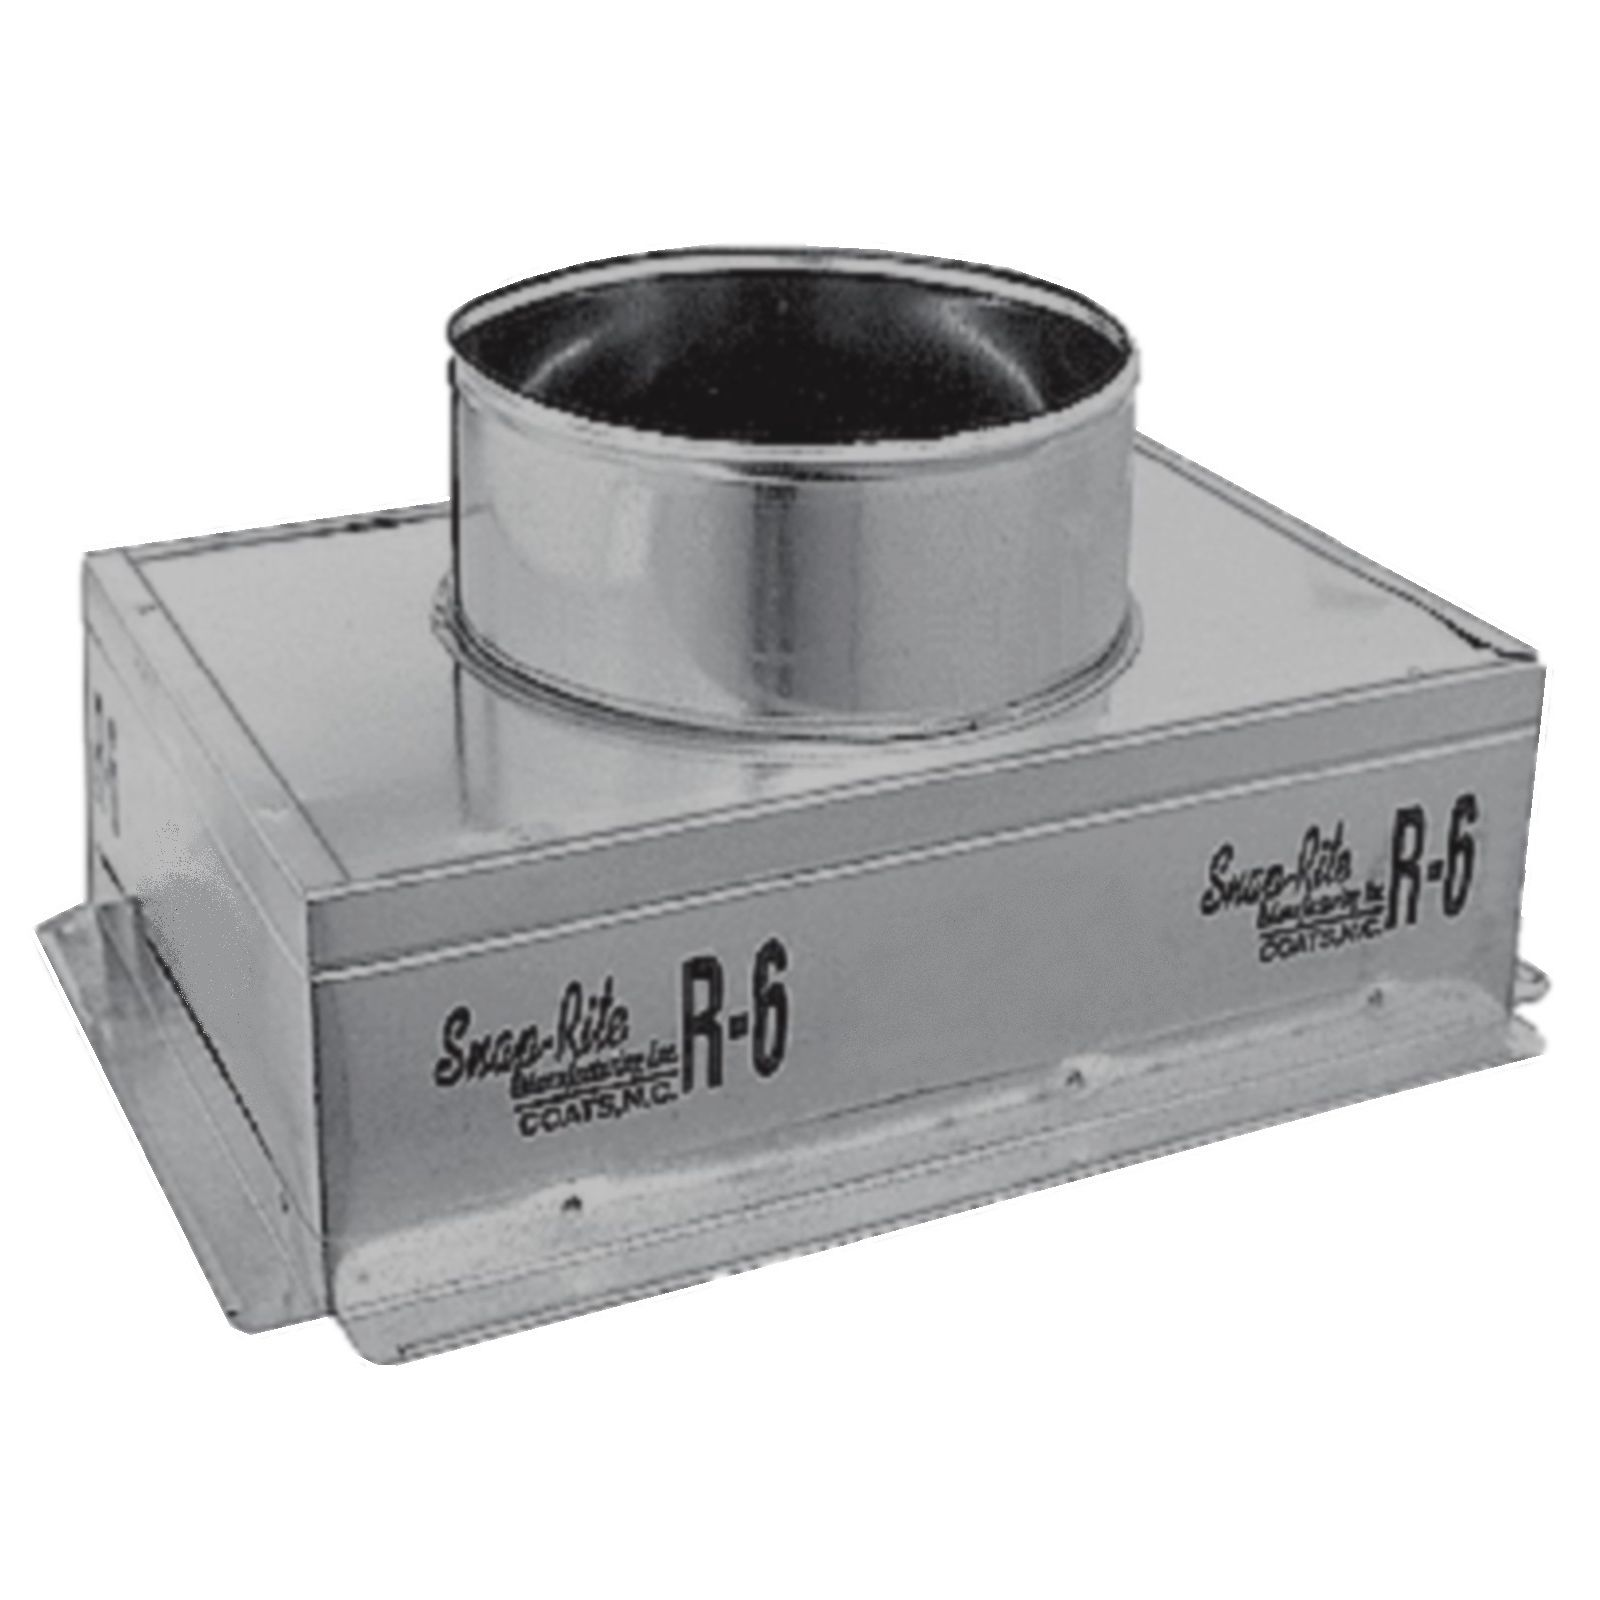 "Snap-Rite 14X08X083600FG - Metal Top Insulated Register Box With Flange & Gasket, 14"" x 08"" x 08"" - R6"